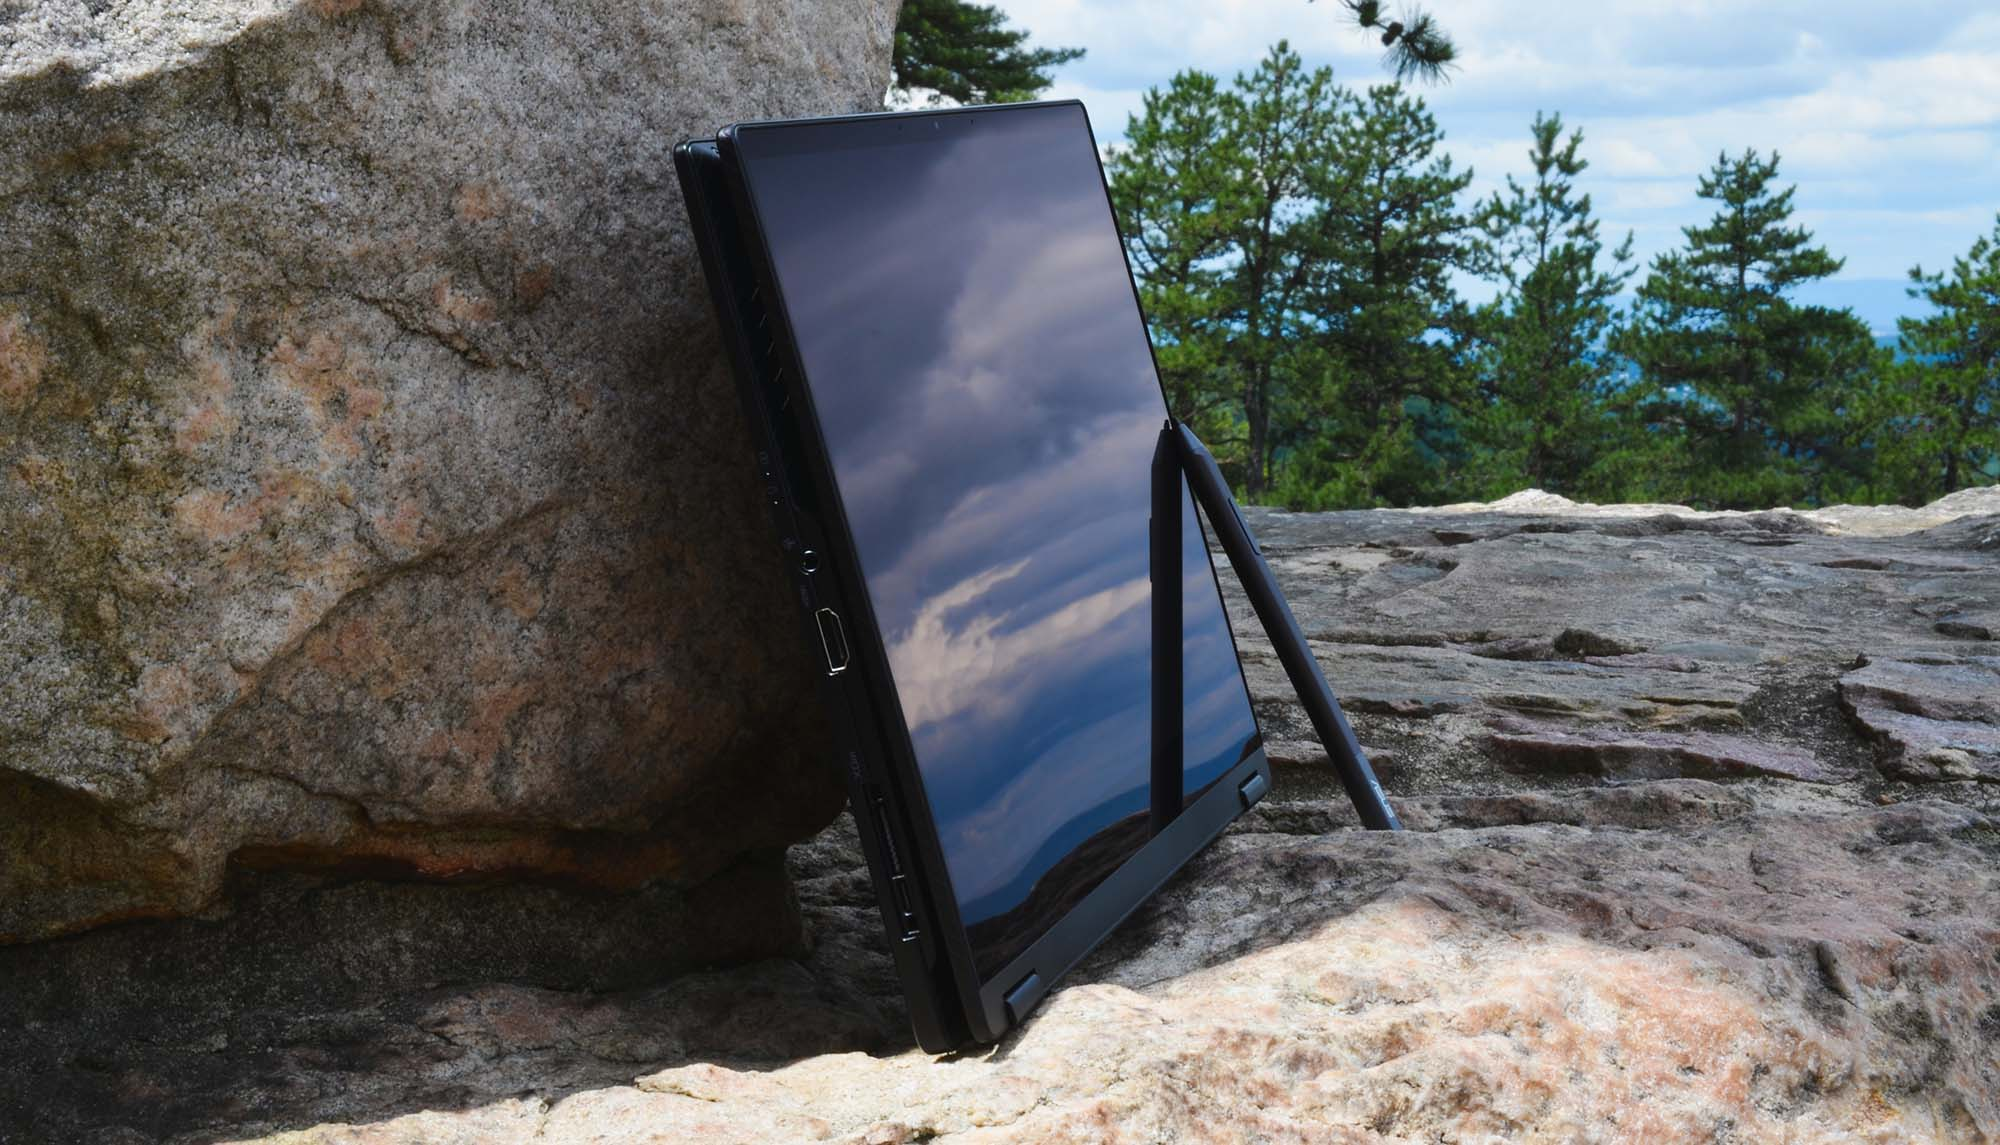 tablet mode - outdoors